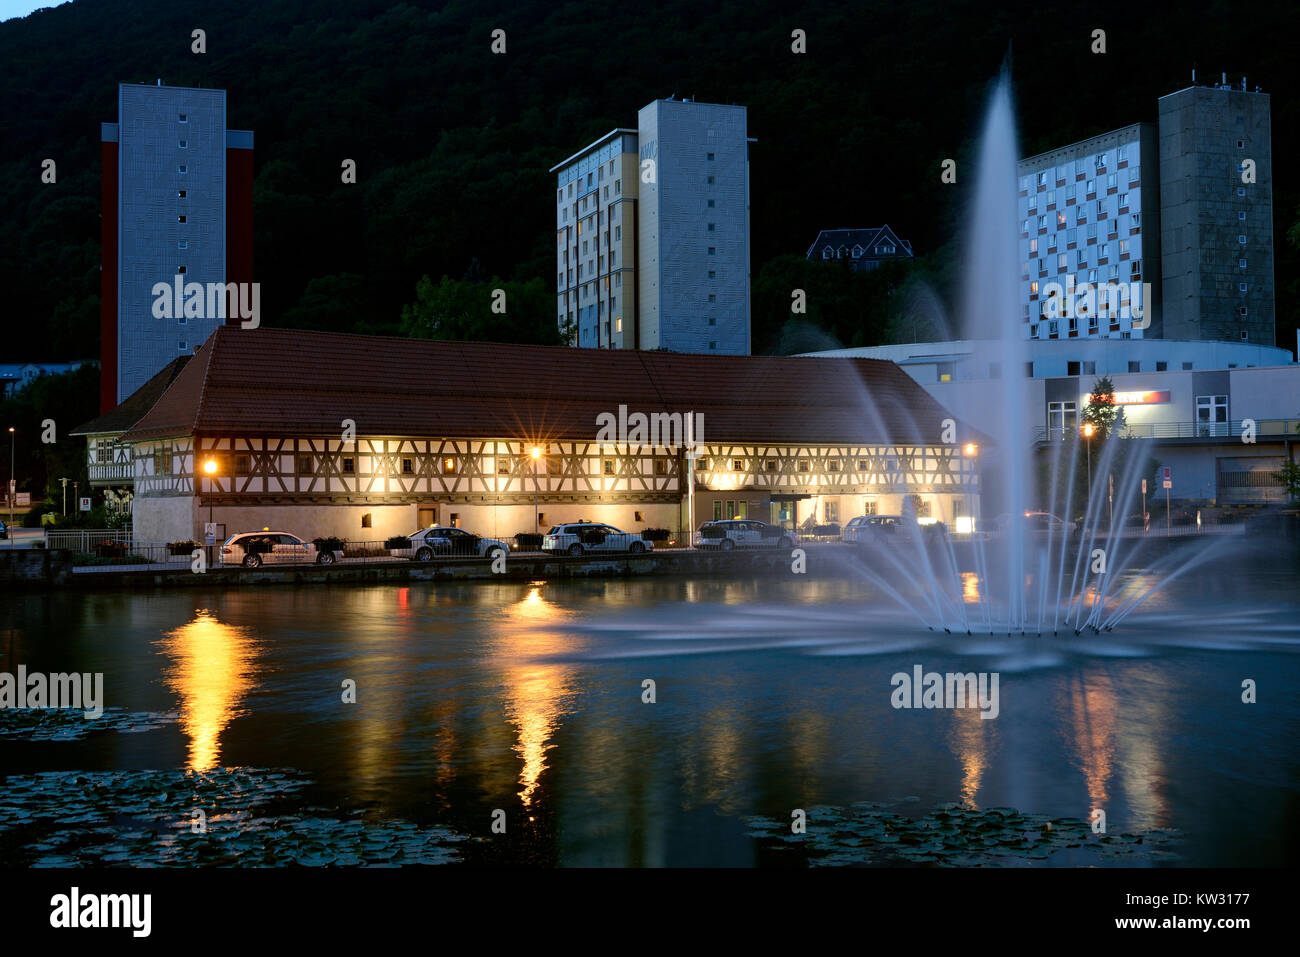 Timber-framed building of the weapon museum and tower block, Thuringia, Wallowing, Fachwerkbau des Waffenmuseums - Stock Image